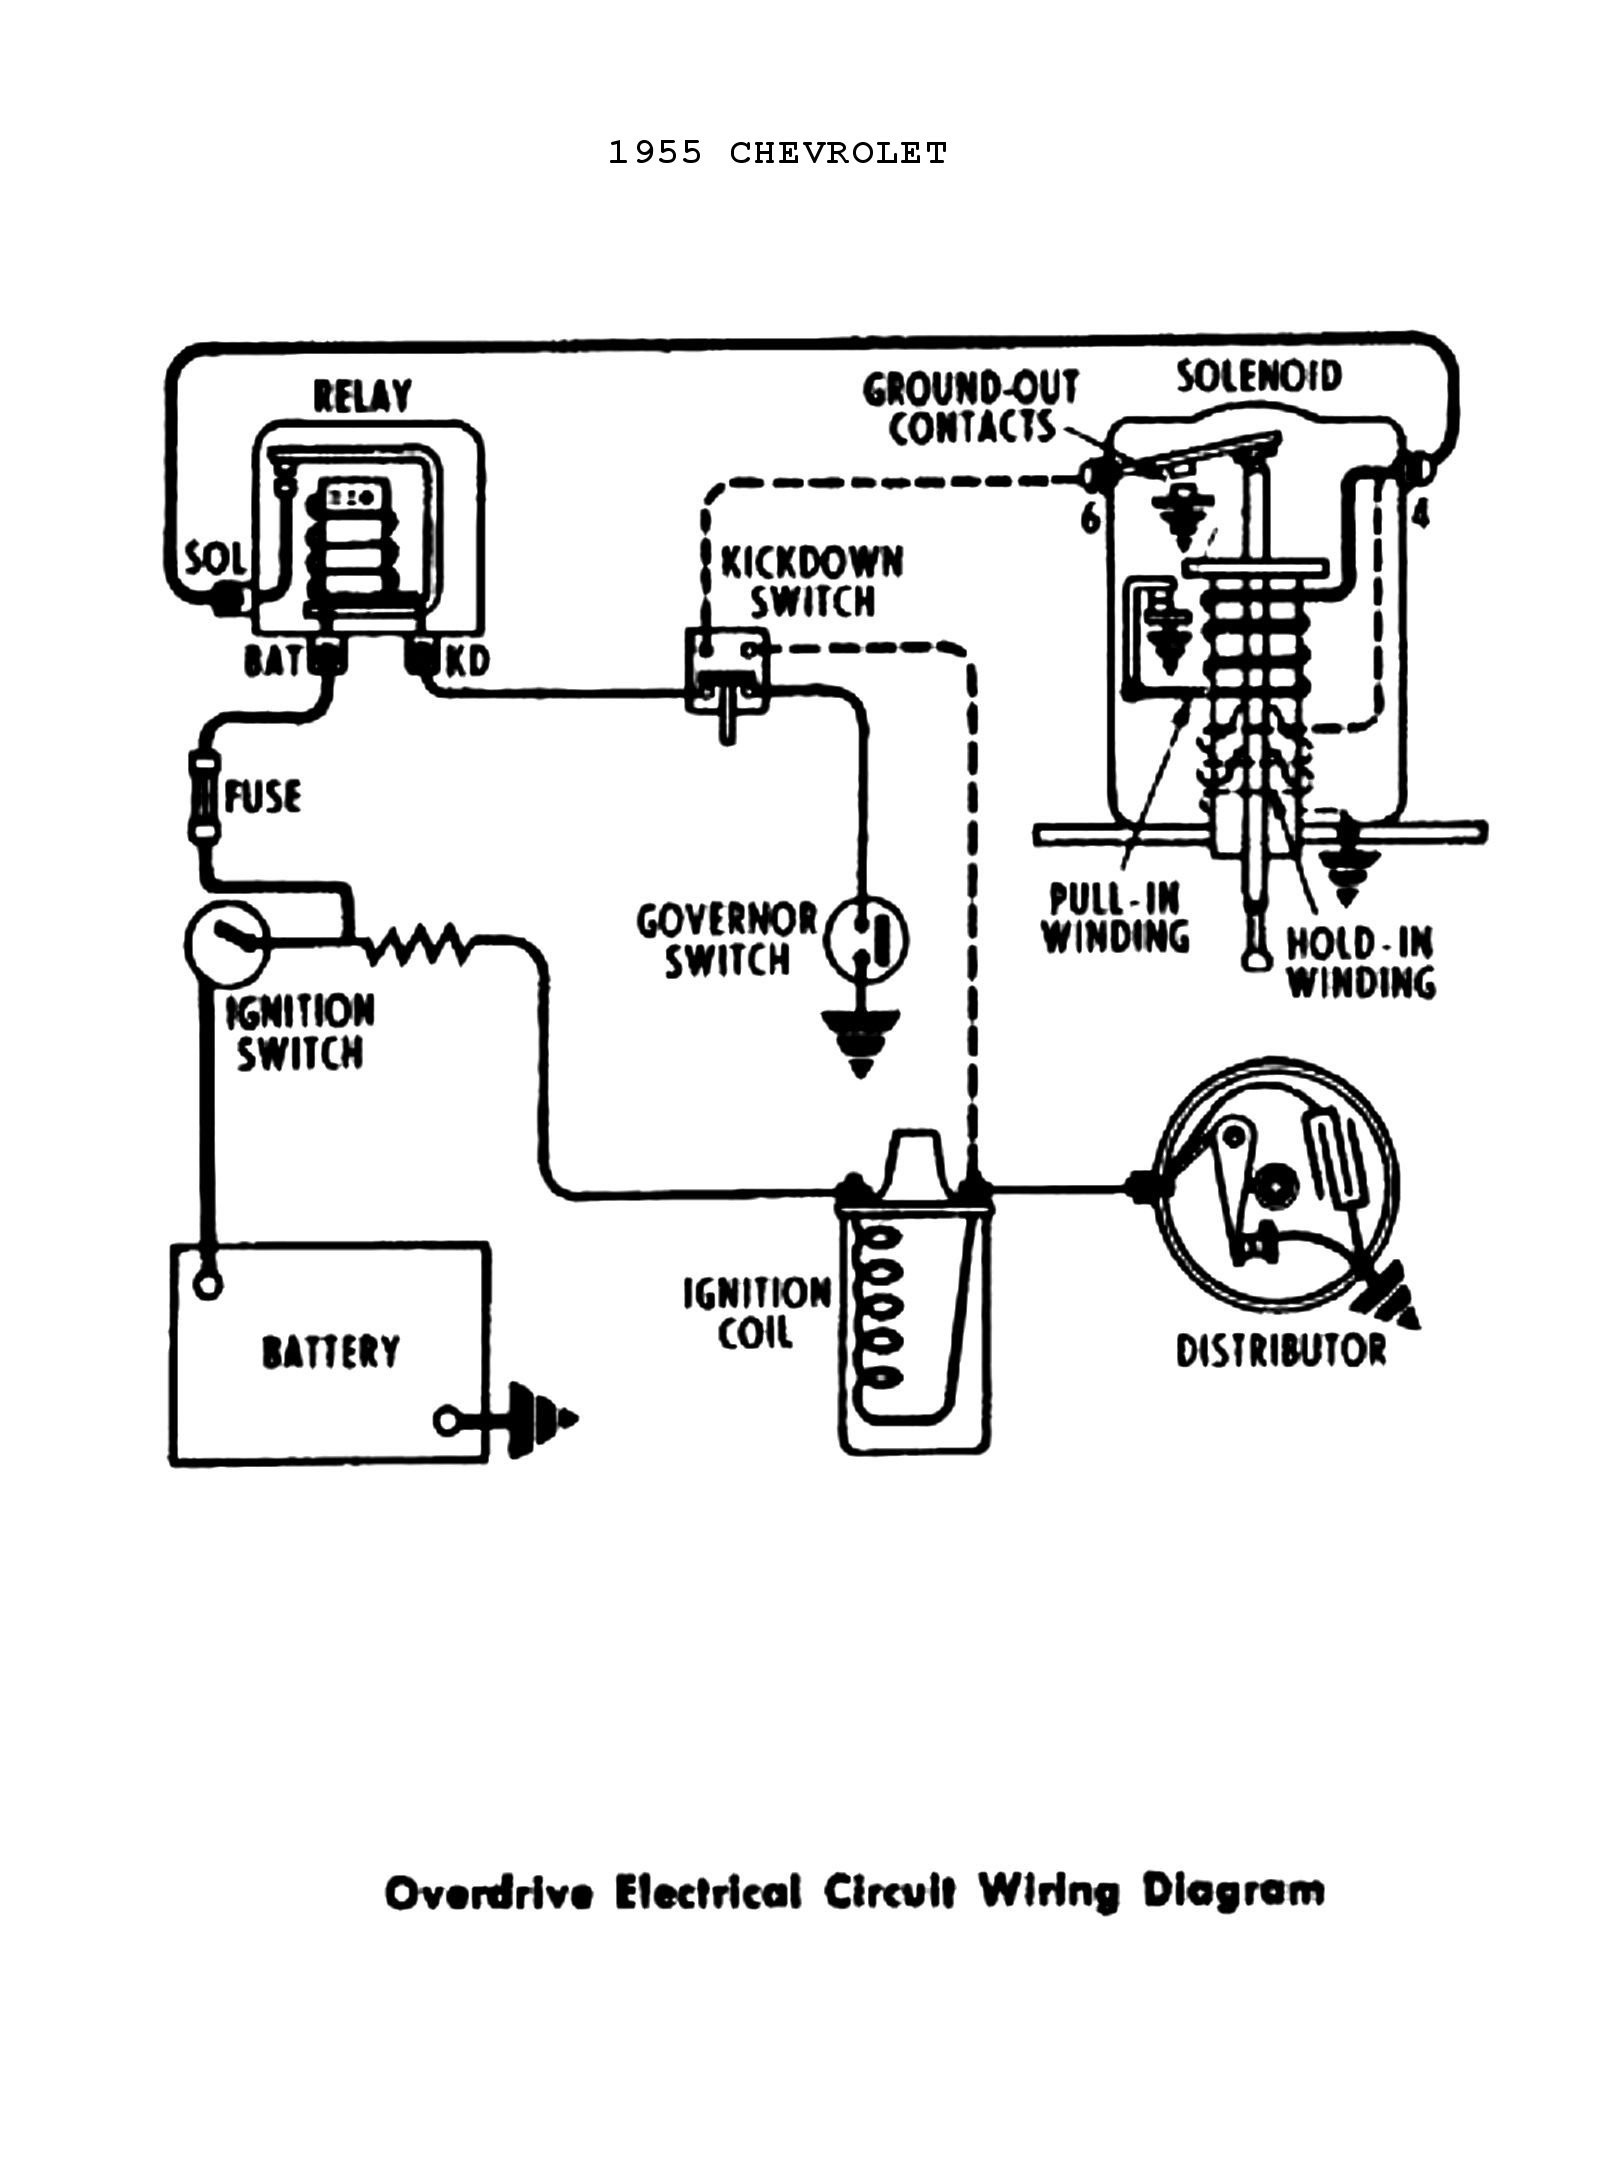 Chevy truck body parts diagram chevy wiring diagrams of chevy truck body parts diagram bed fleetside